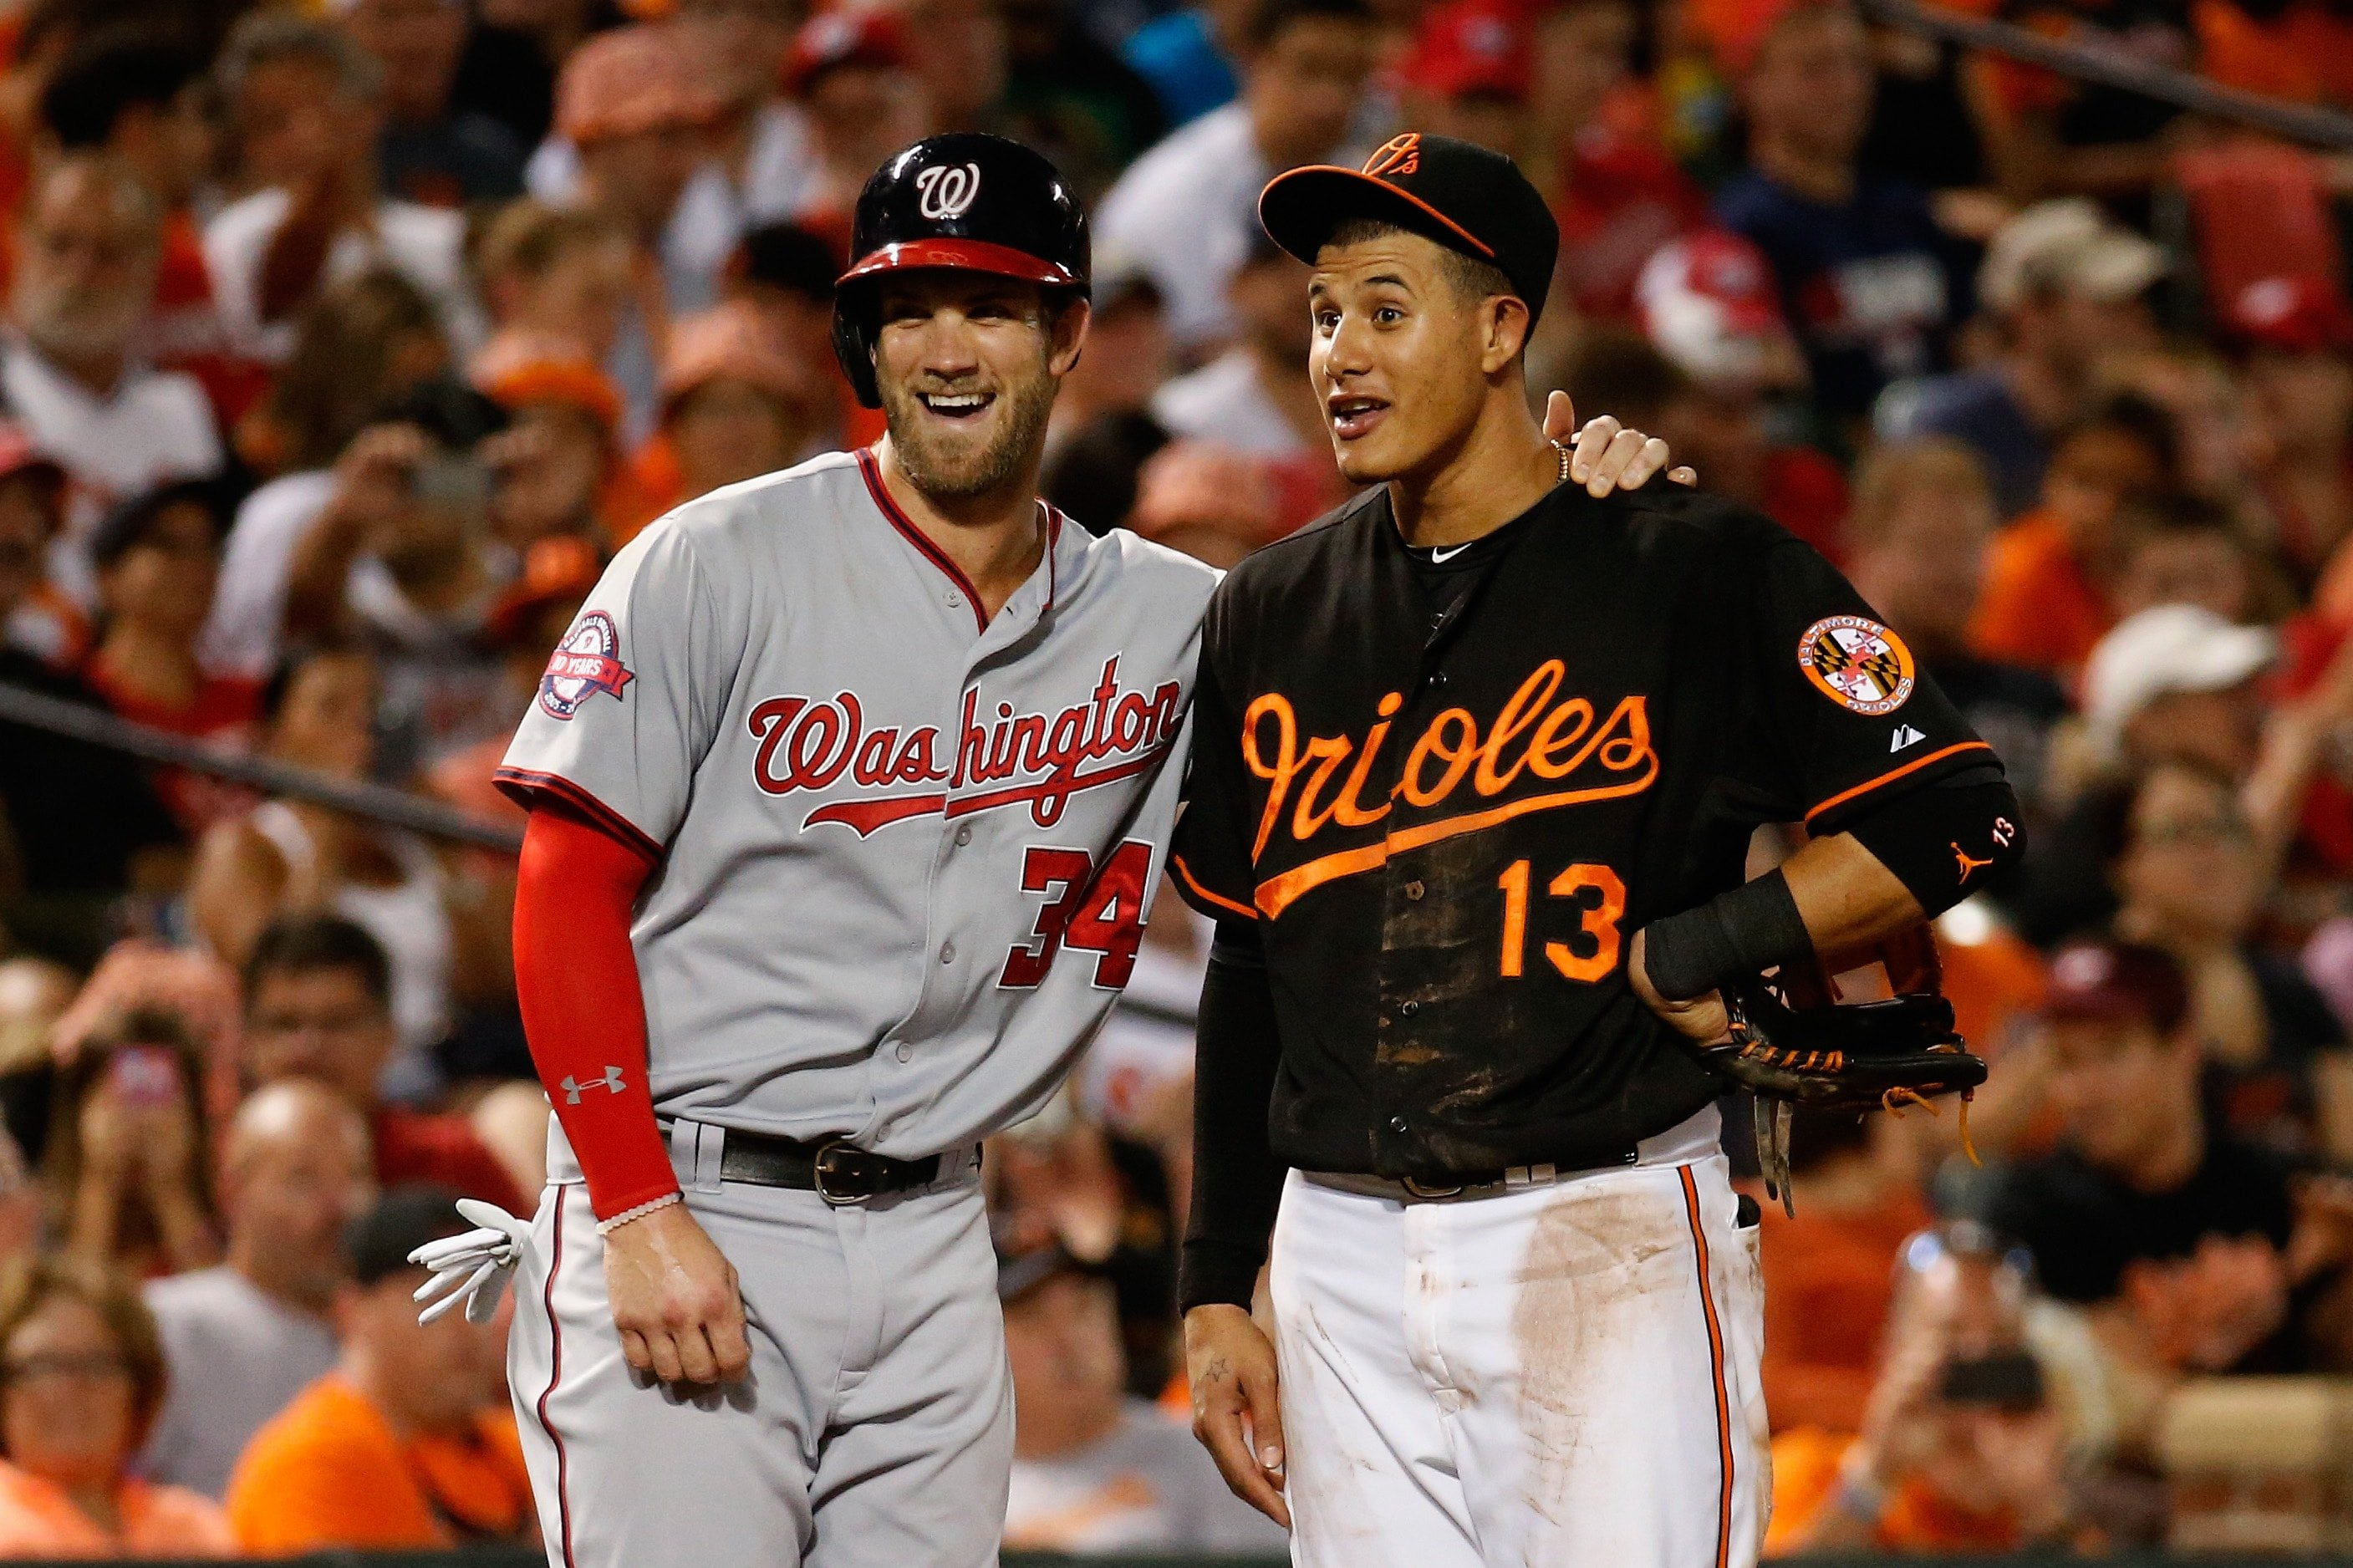 BALTIMORE, MD - JULY 10: Bryce Harper of the Washington Nationals and Manny Machado of the Baltimore Orioles talk during their game at Oriole Park at Camden Yards. (Photo by Rob Carr/Getty Images)